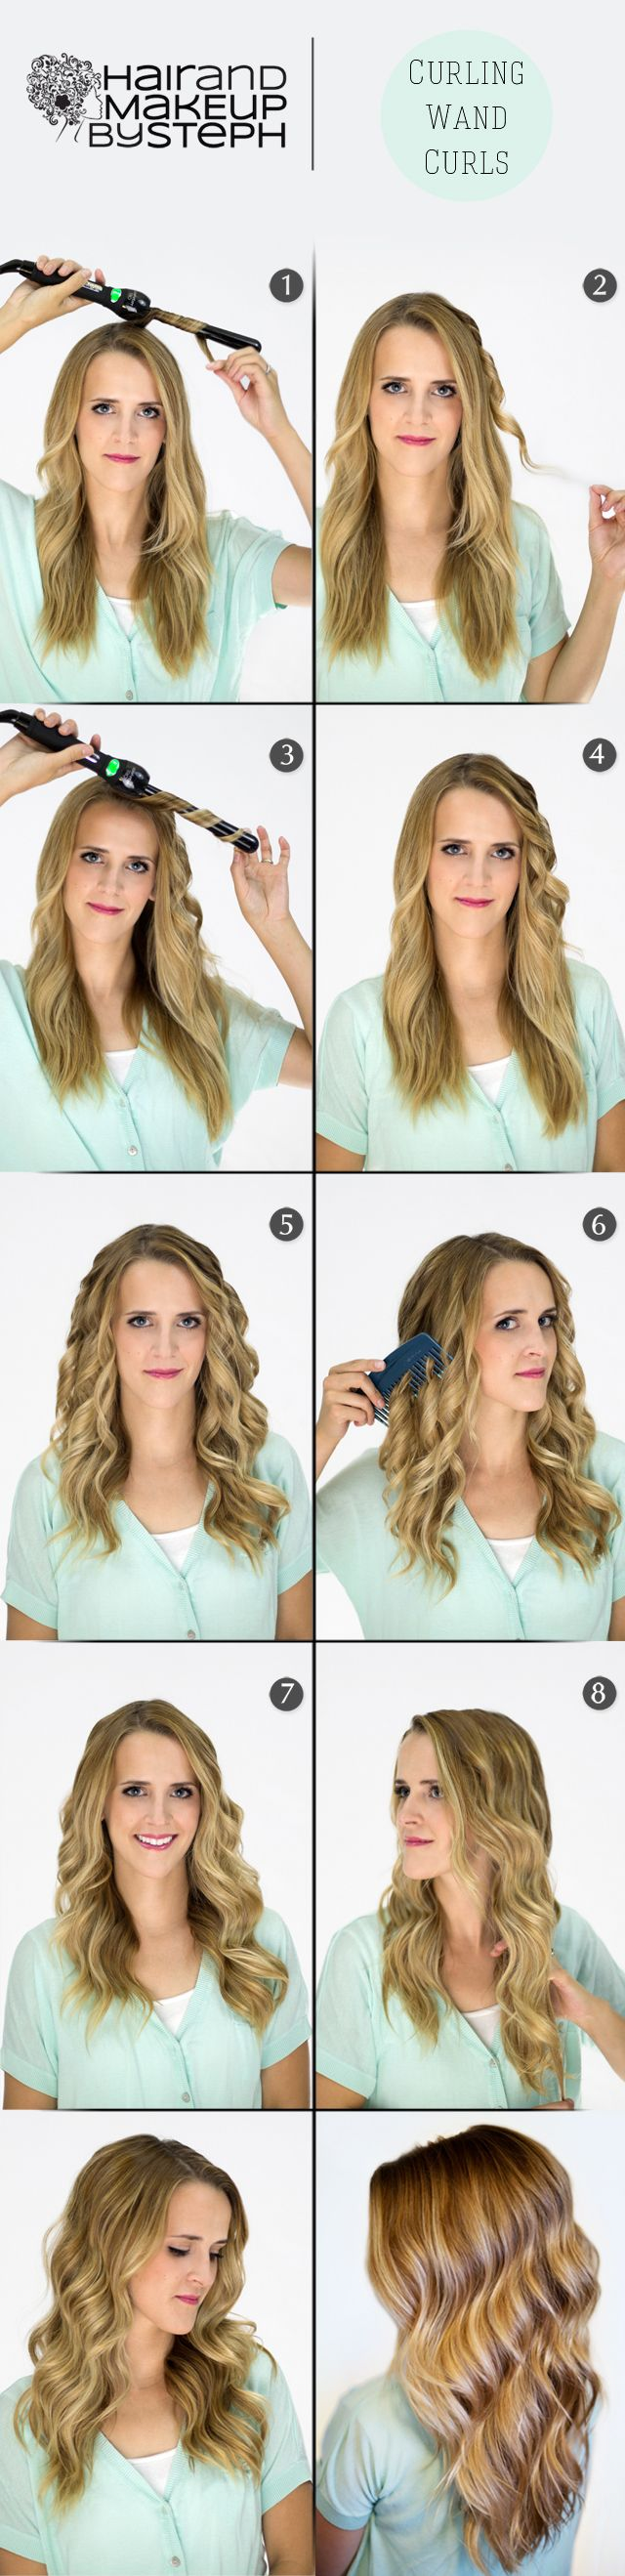 hair style wand 25 best ideas about curling wand curls on 5182